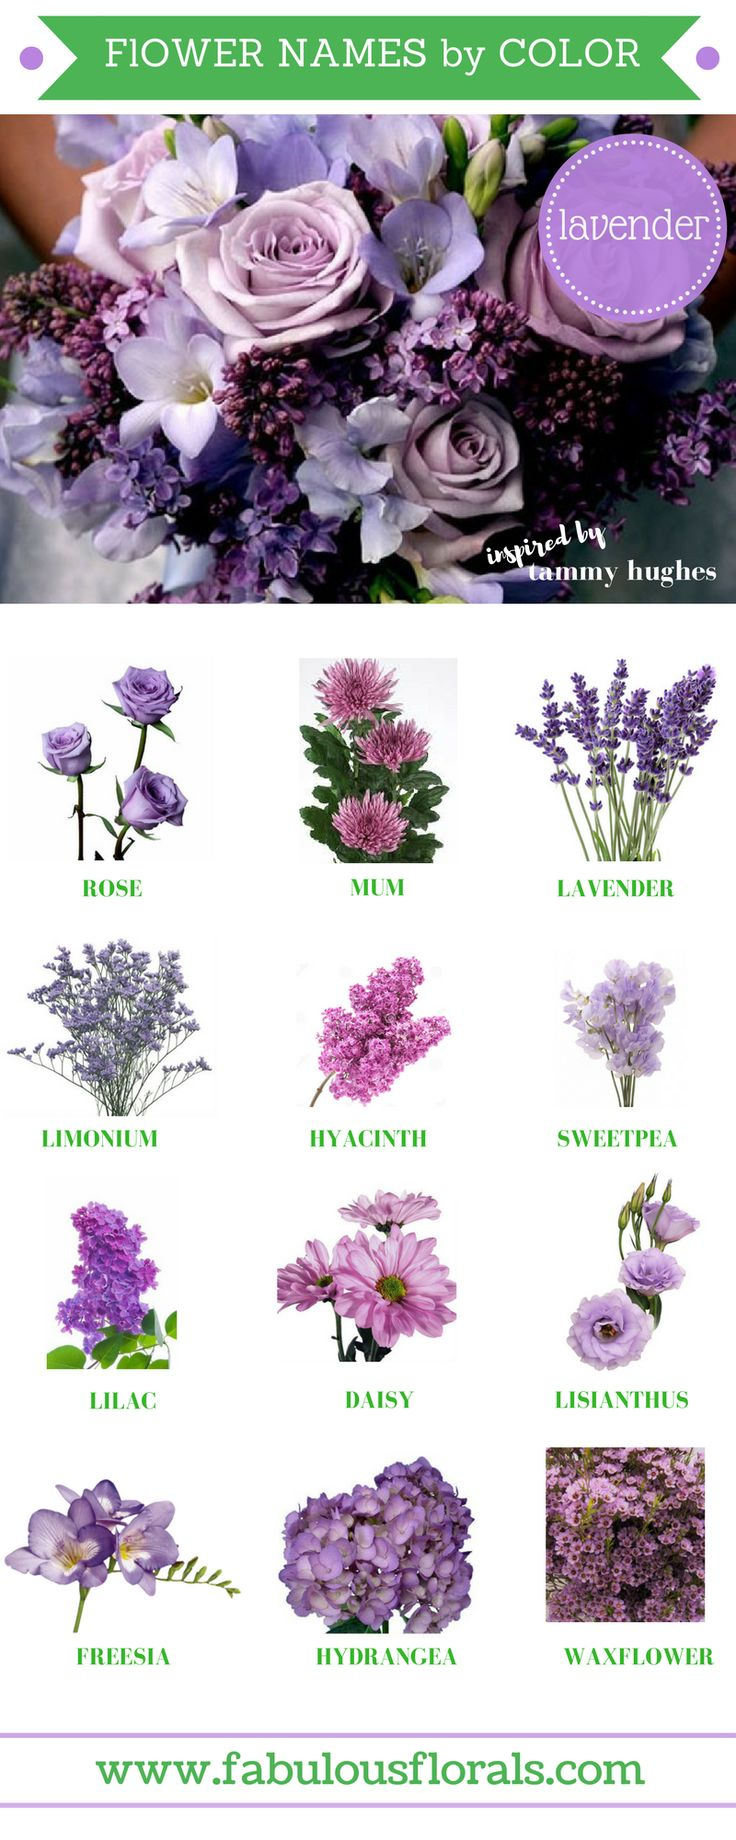 Purples How To DIY Wedding Flowers! 2018 Wedding Flower Trends. www.howtodiyweddingflowers.com Easy DIY Tutorials and How to Tips & Tricks! #diywedding #diyflowers #howtomakeabouquet www.howtodiyweddingflowers.com